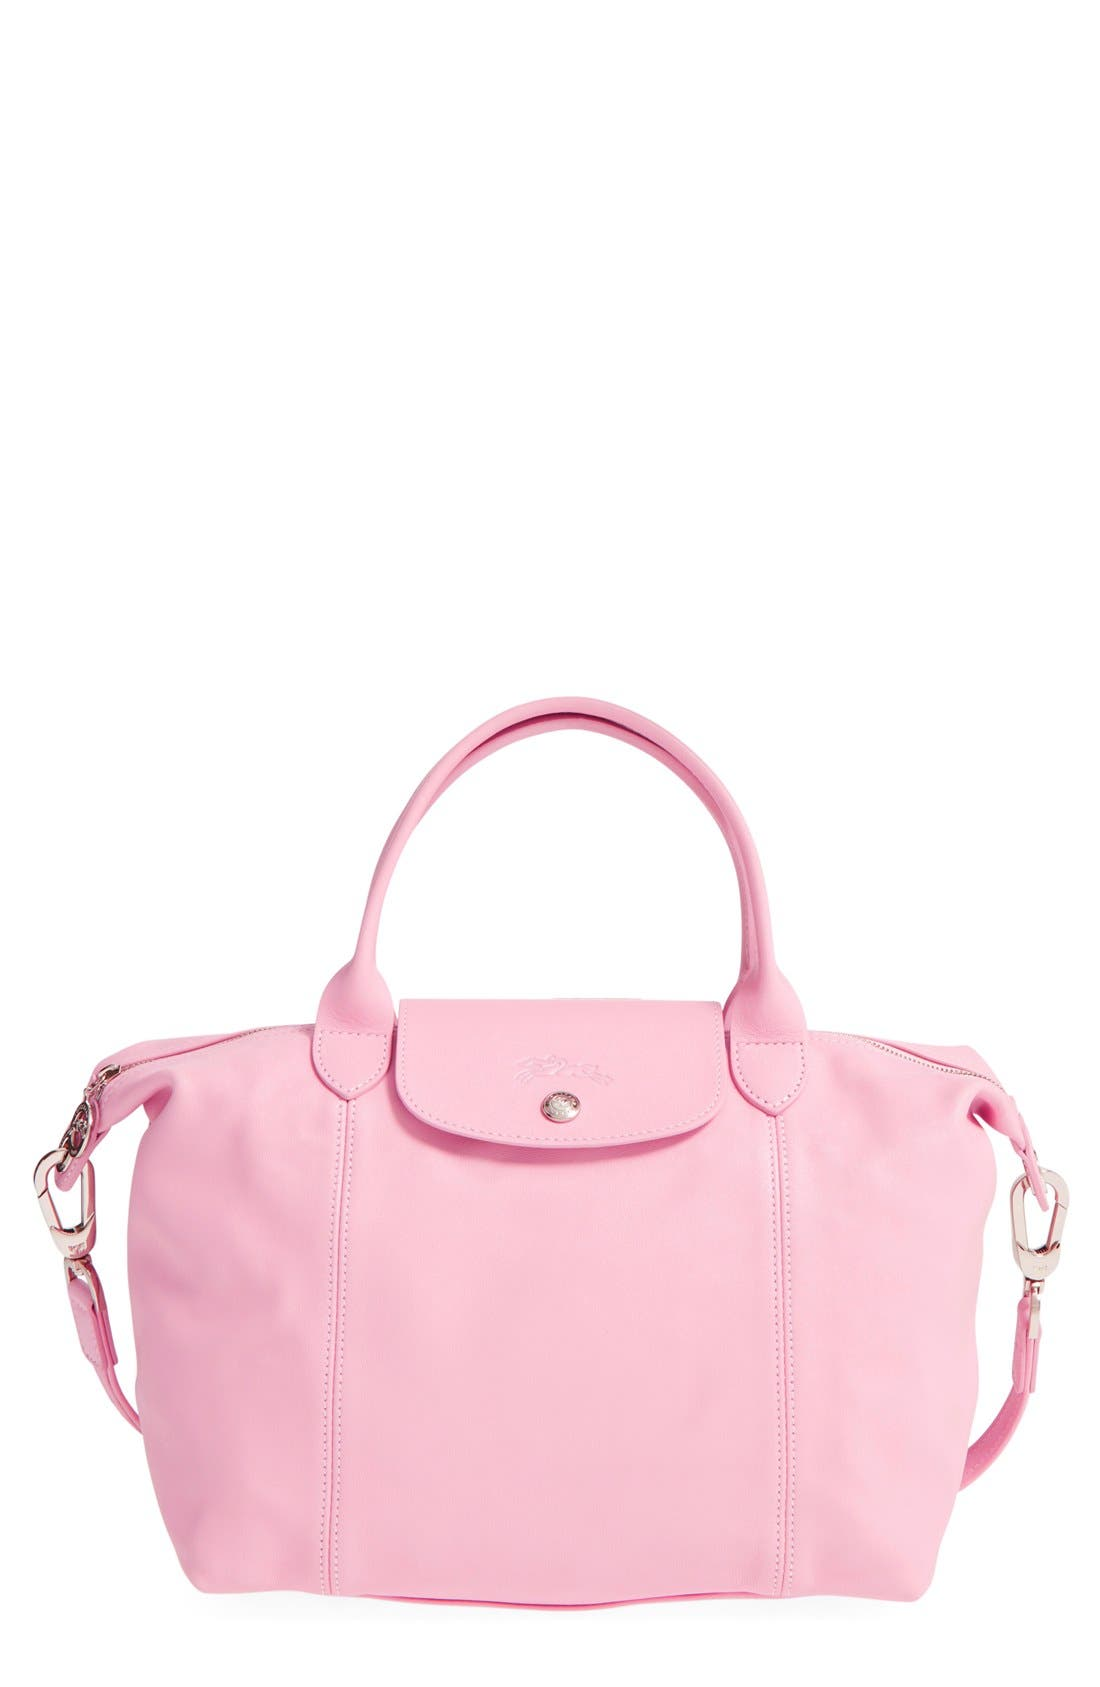 Small 'Le Pliage Cuir' Leather Top Handle Tote,                         Main,                         color, Girl